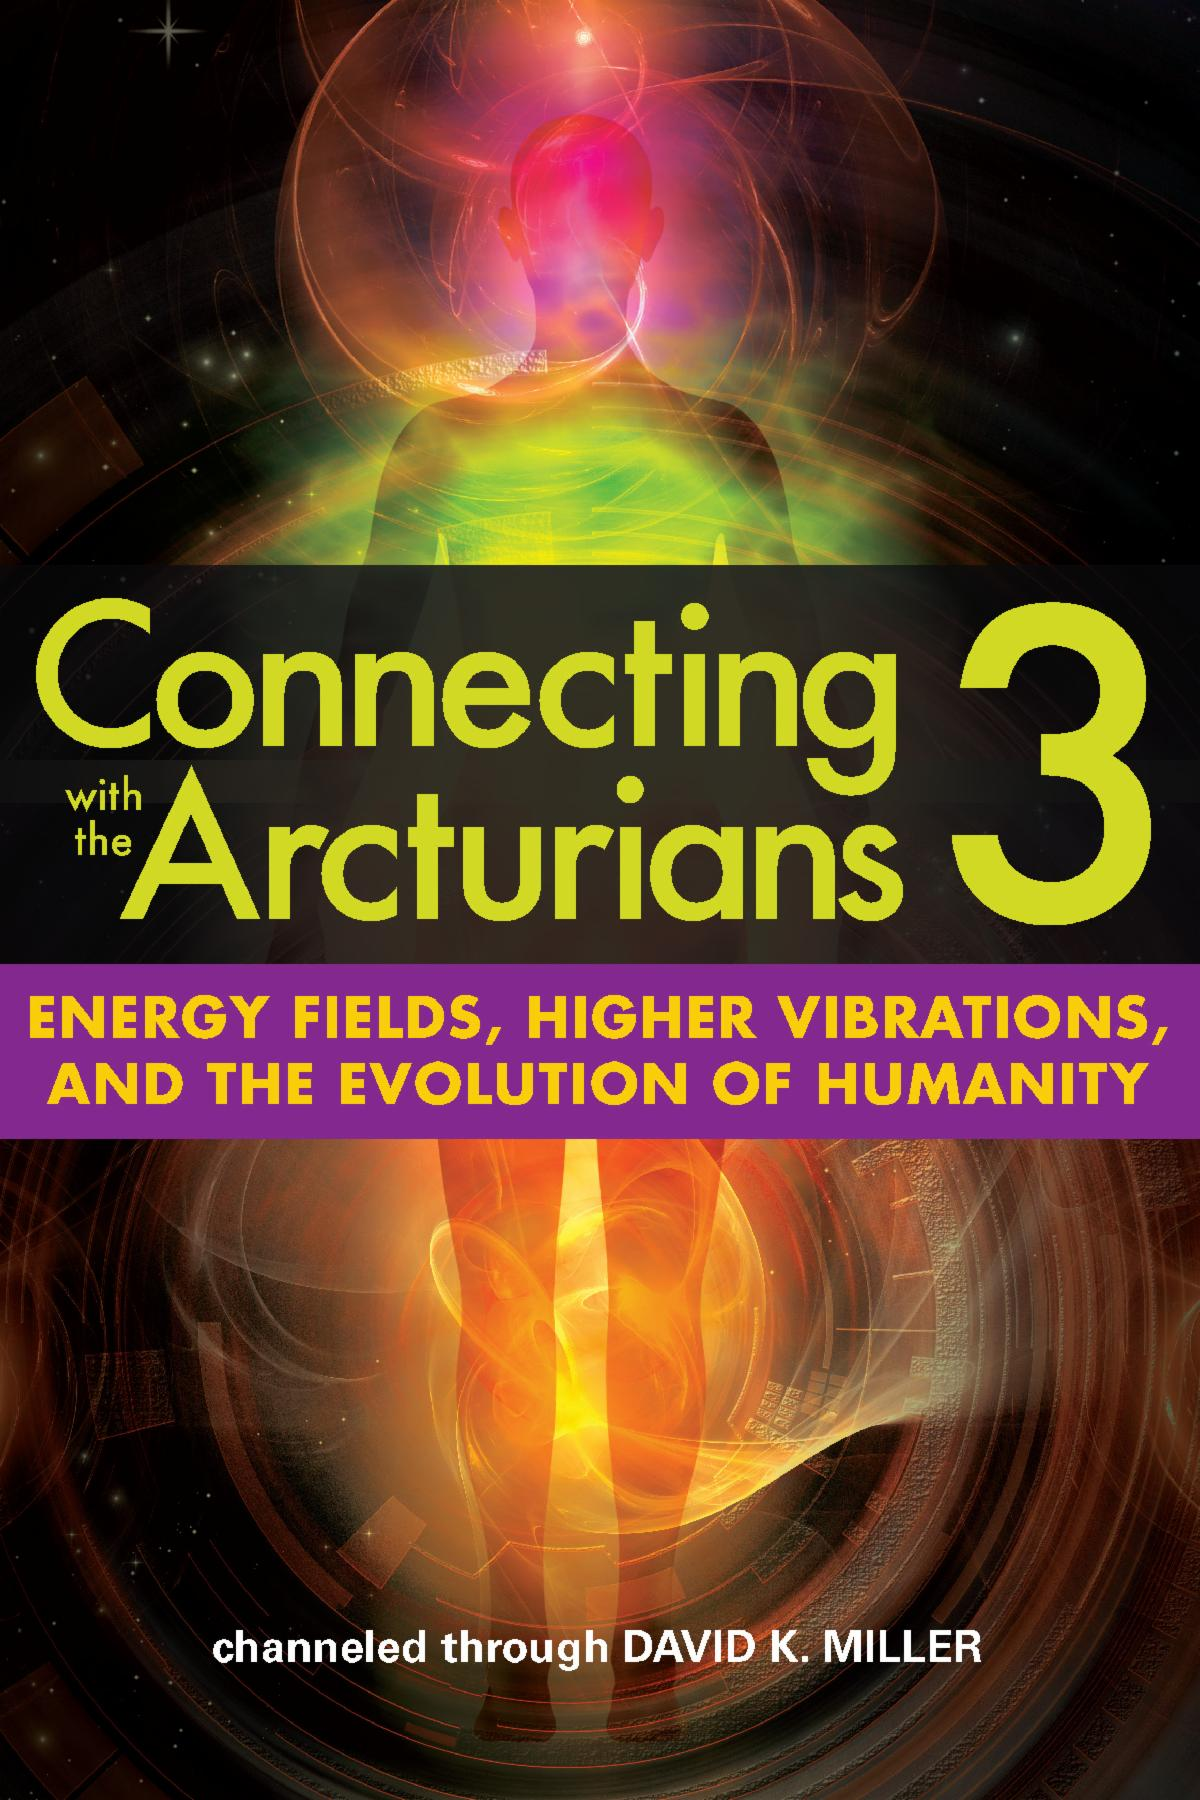 Connecting with the Arcturians3 book cover